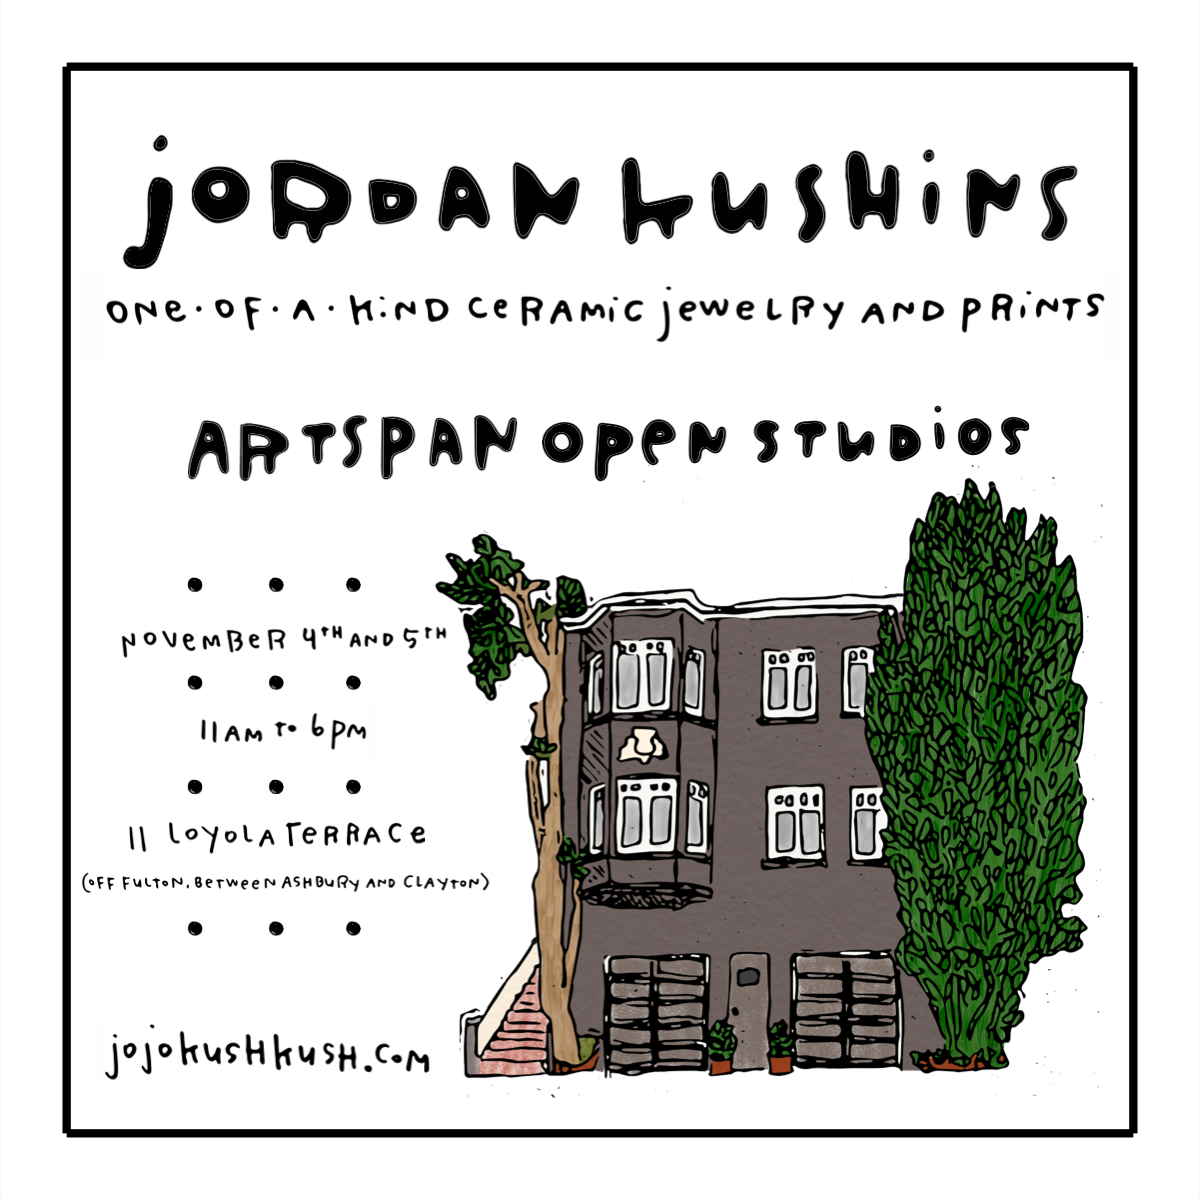 artspan+open+studios+%2F%2F+jordan+kushins+%2F%2F+november+4th+and+5th,+2017-1.png